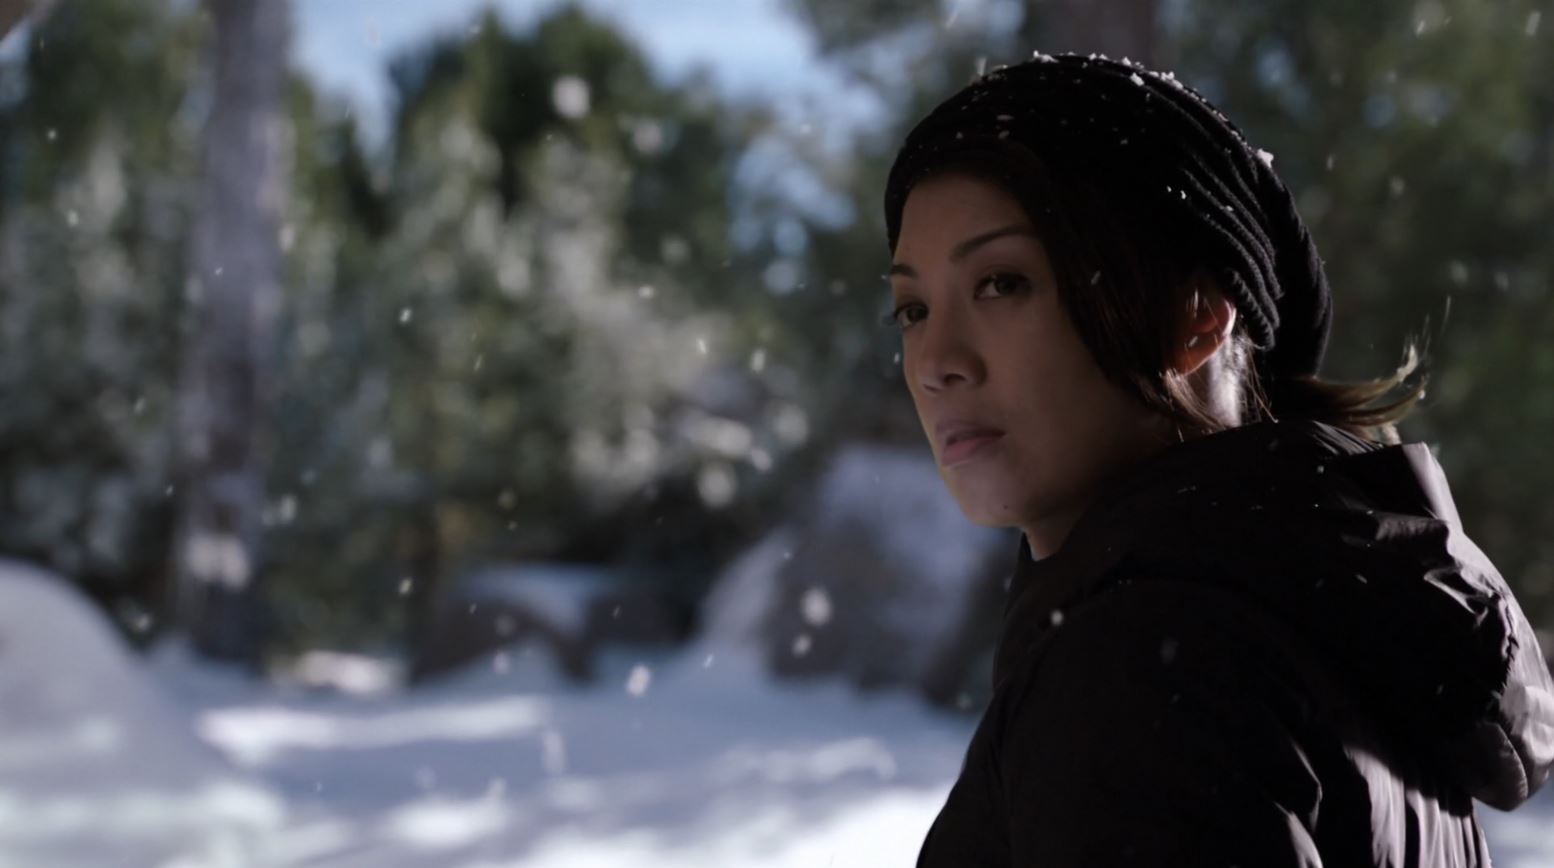 Agents of SHIELD - 'The Only Light in the Darkness' - Melinda May (Ming Na Wen) leaving SHIELD